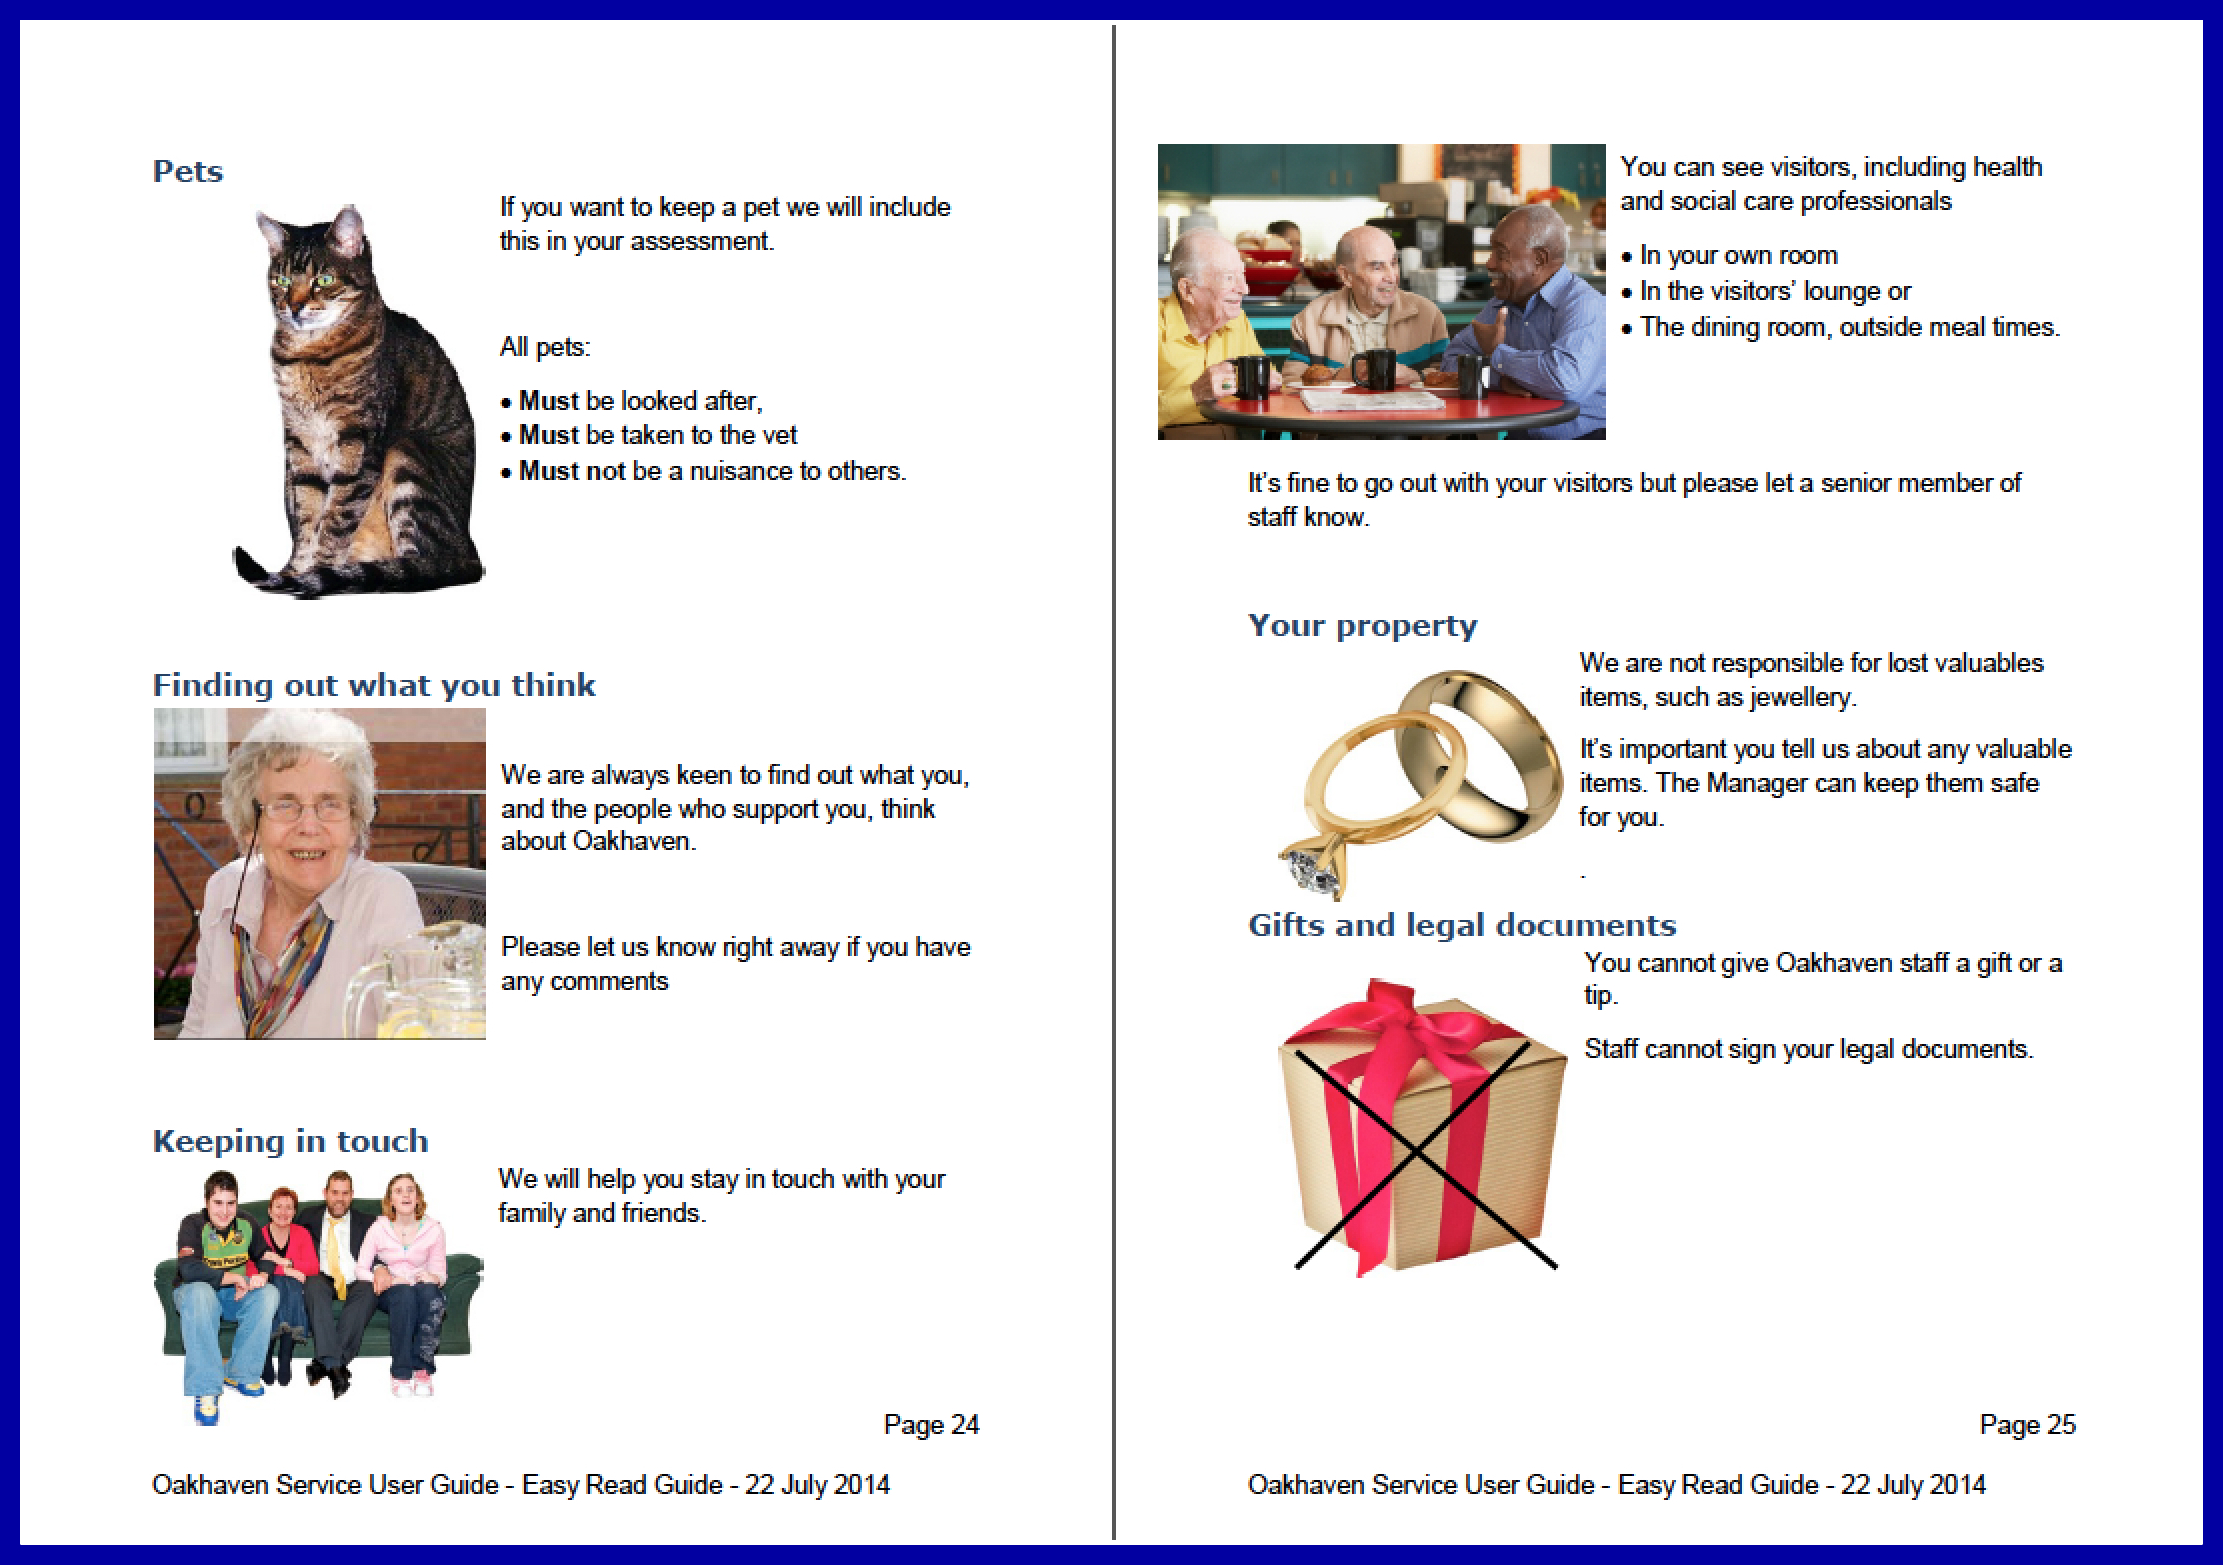 Above: A double-page spread of the Oakhaven Service User Guide   Click here to download a sample of the document